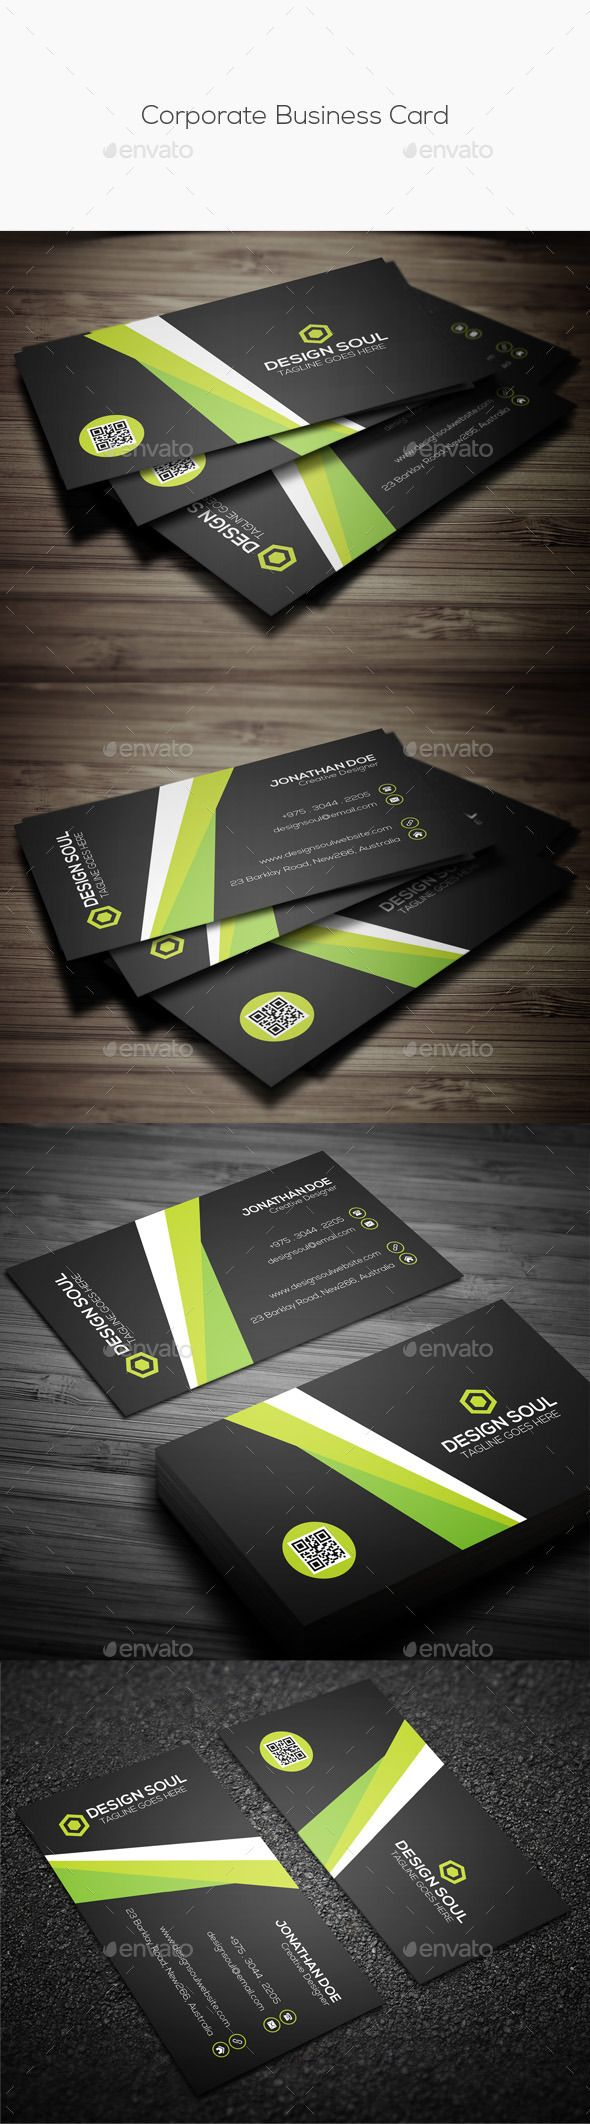 Corporate Business Card Template Design Download Http Graphicriver Net Item Corporate Business Corporate Business Card Business Cards Business Card Design